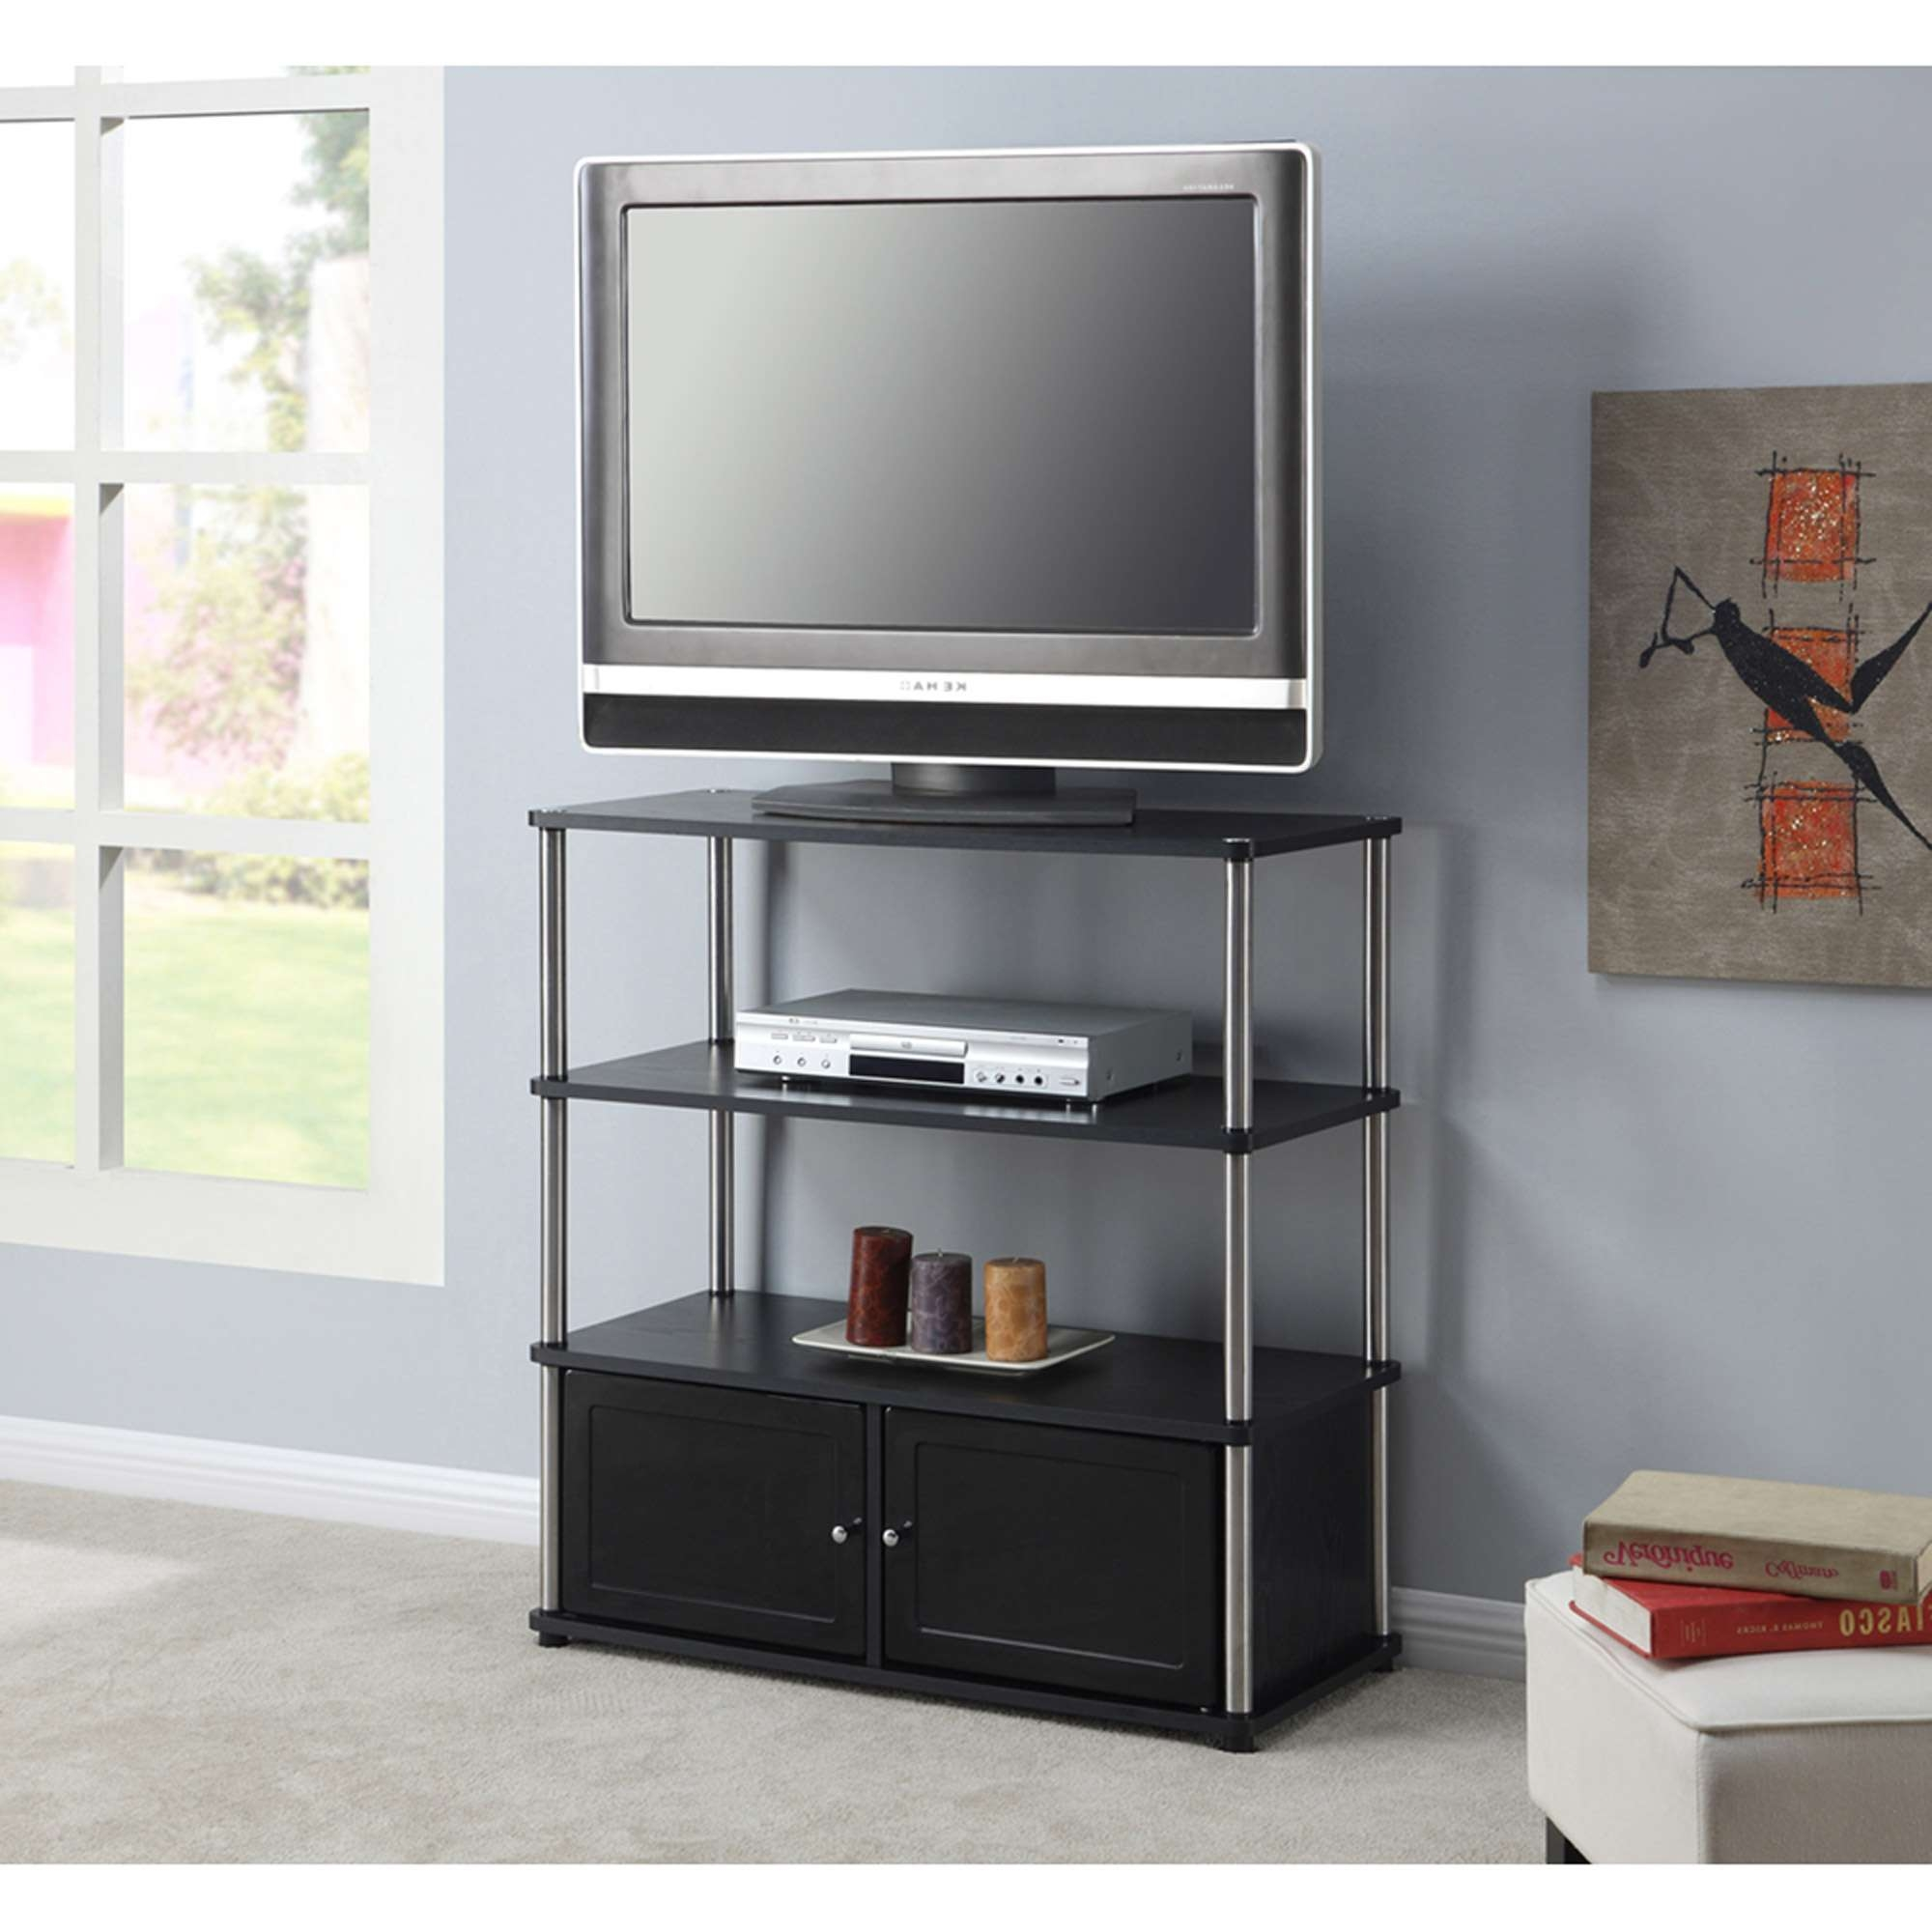 Tv Stand : High Tv Stand Tv027 Modern In Red Gloss Free Shipping Regarding Red Modern Tv Stands (View 15 of 15)